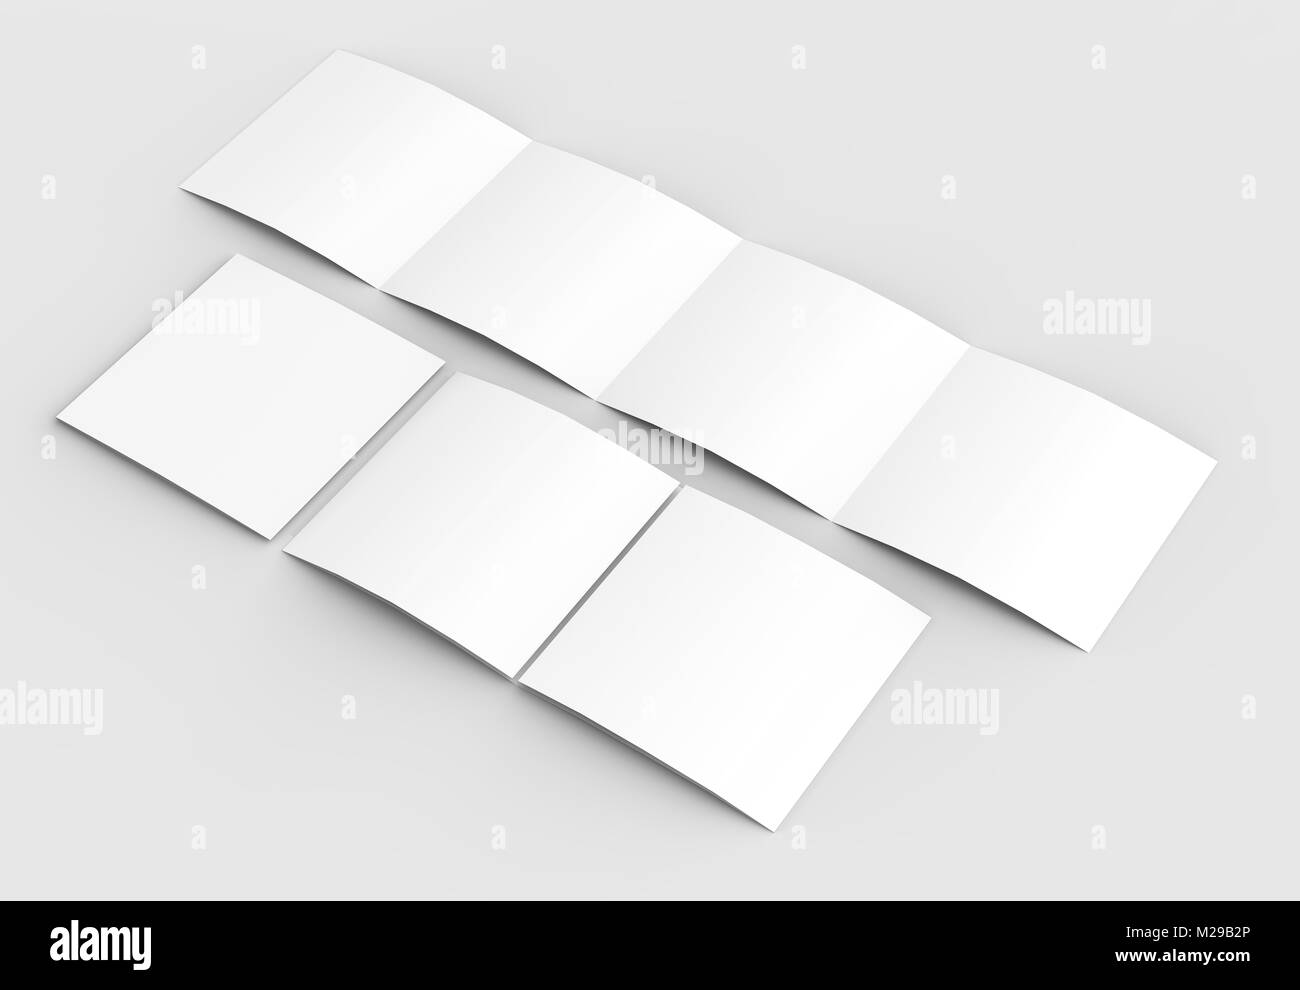 Square four folded - 4-Fold - brochure mock-up isolated on soft gray background. 3D illustrating - Stock Photo